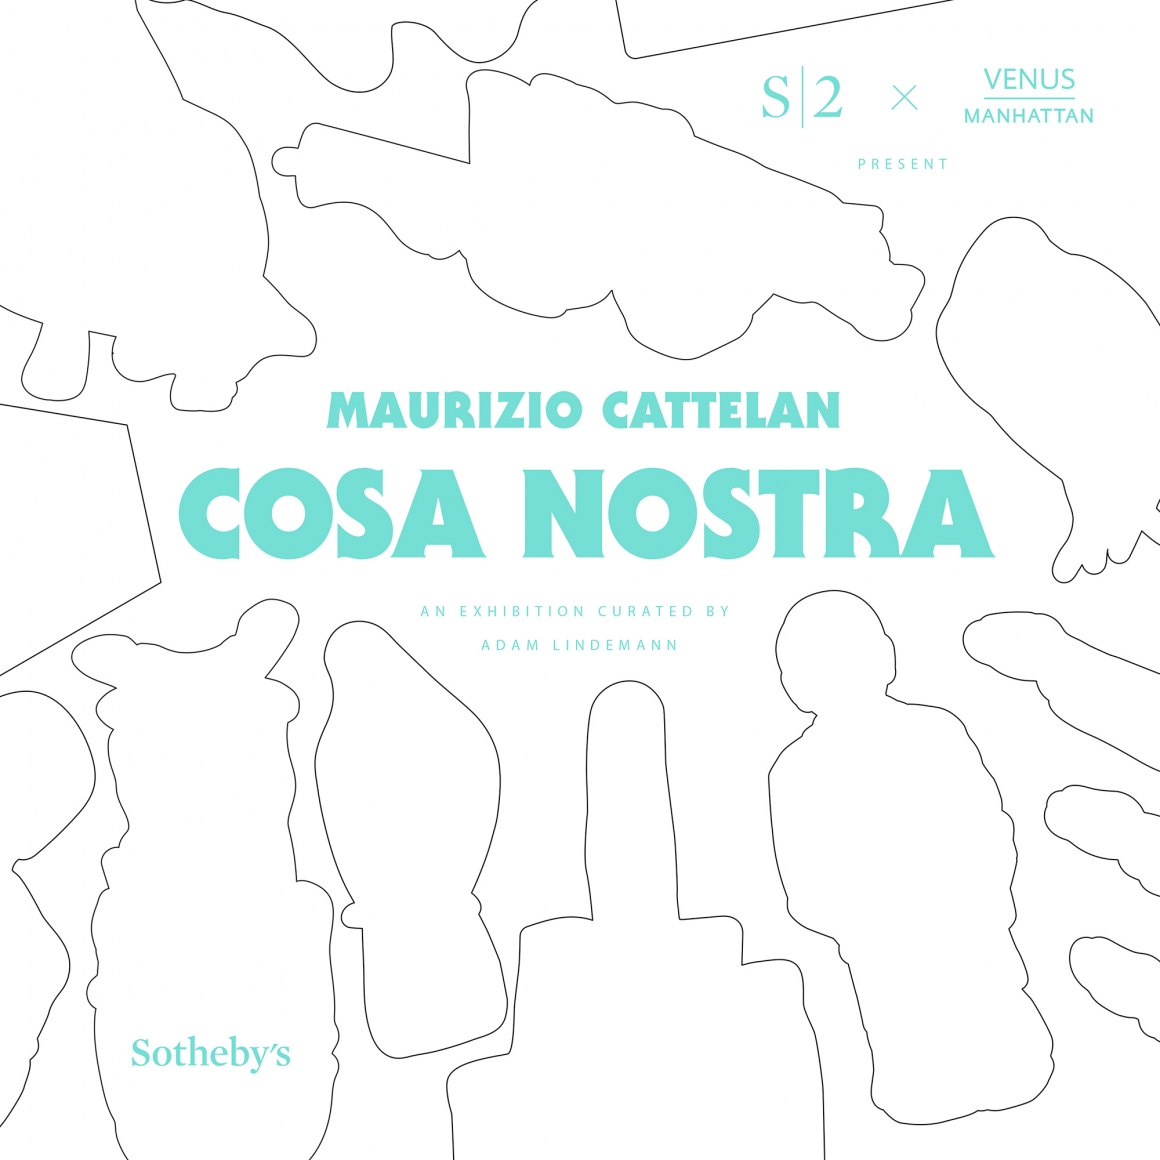 Cover of Maurizio Cattelan: Cosa Nostra, published by Venus Over Manhattan and Sotheby's S|2, New York, 2014